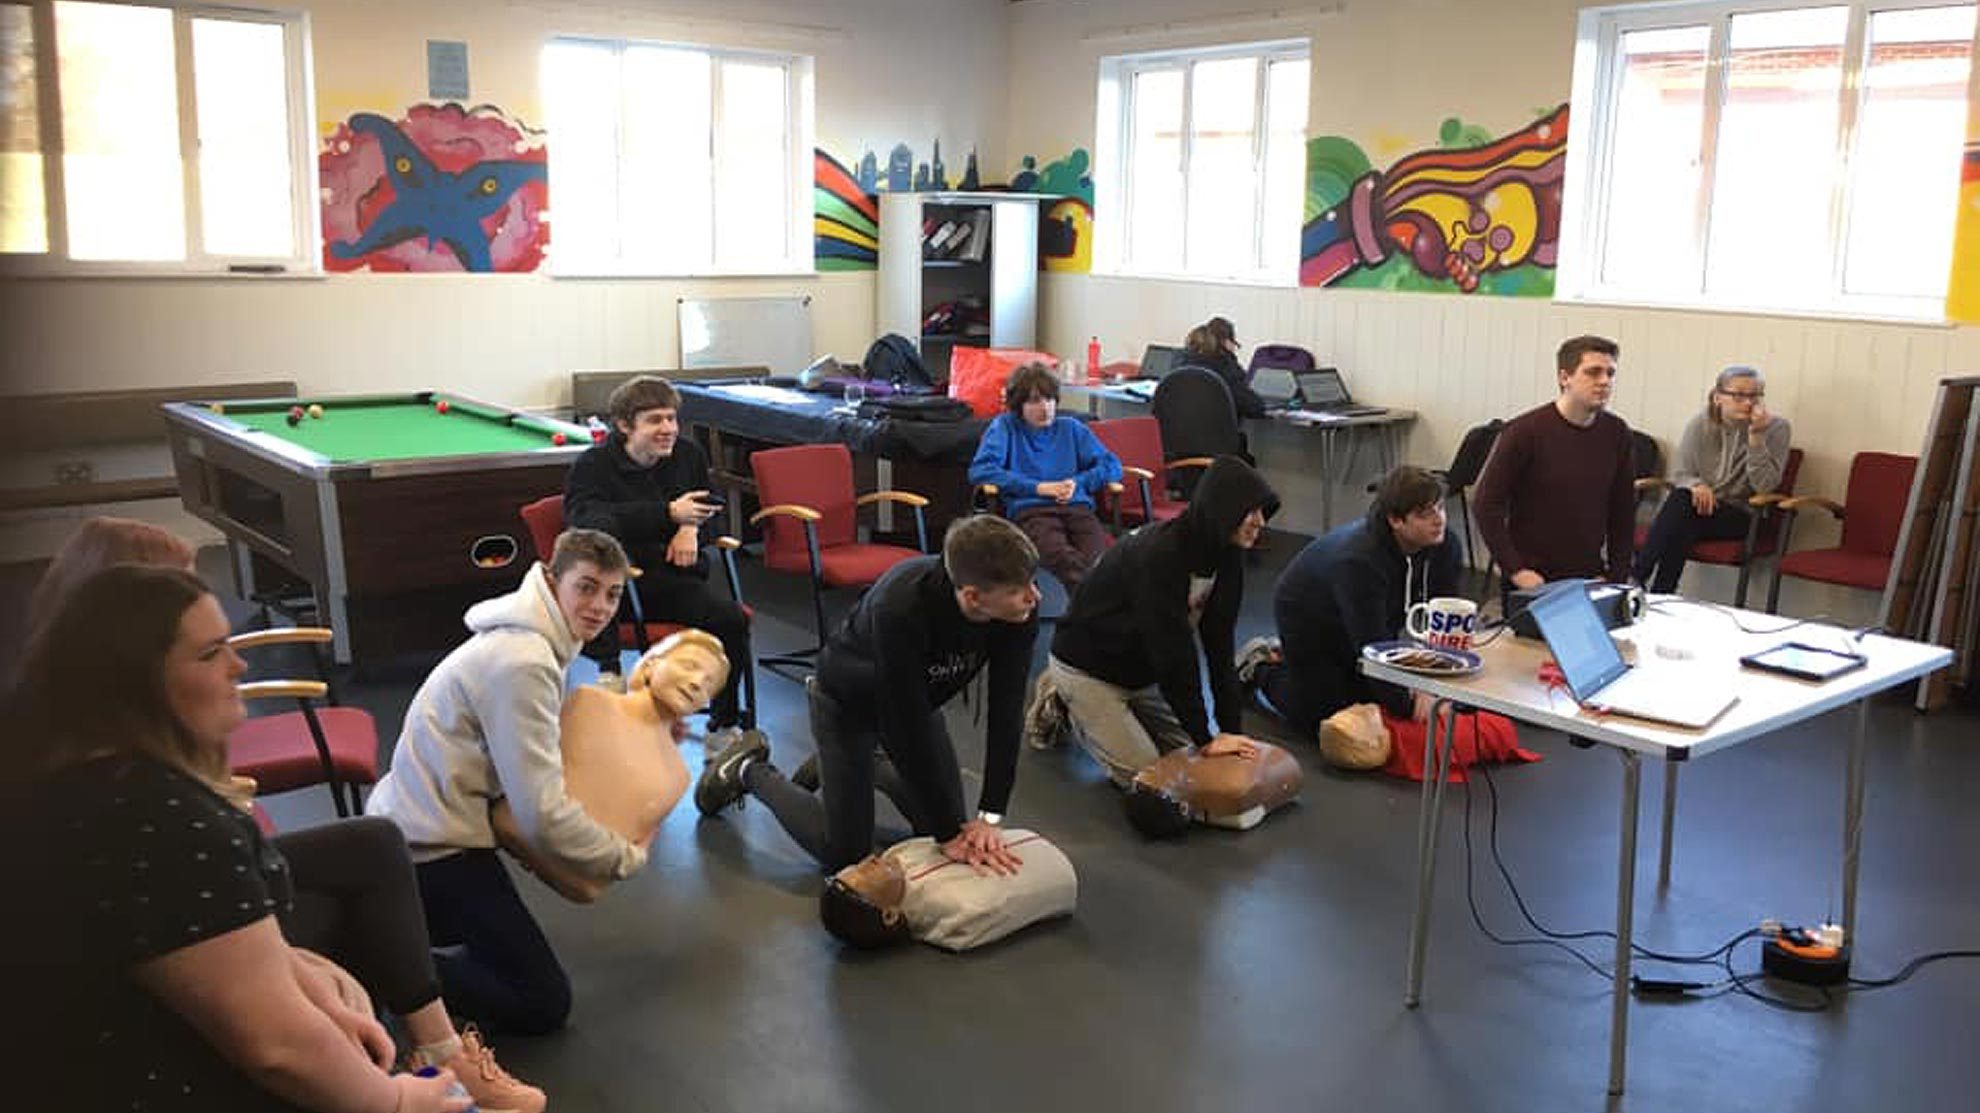 Wealden Works group learning first aid techniques